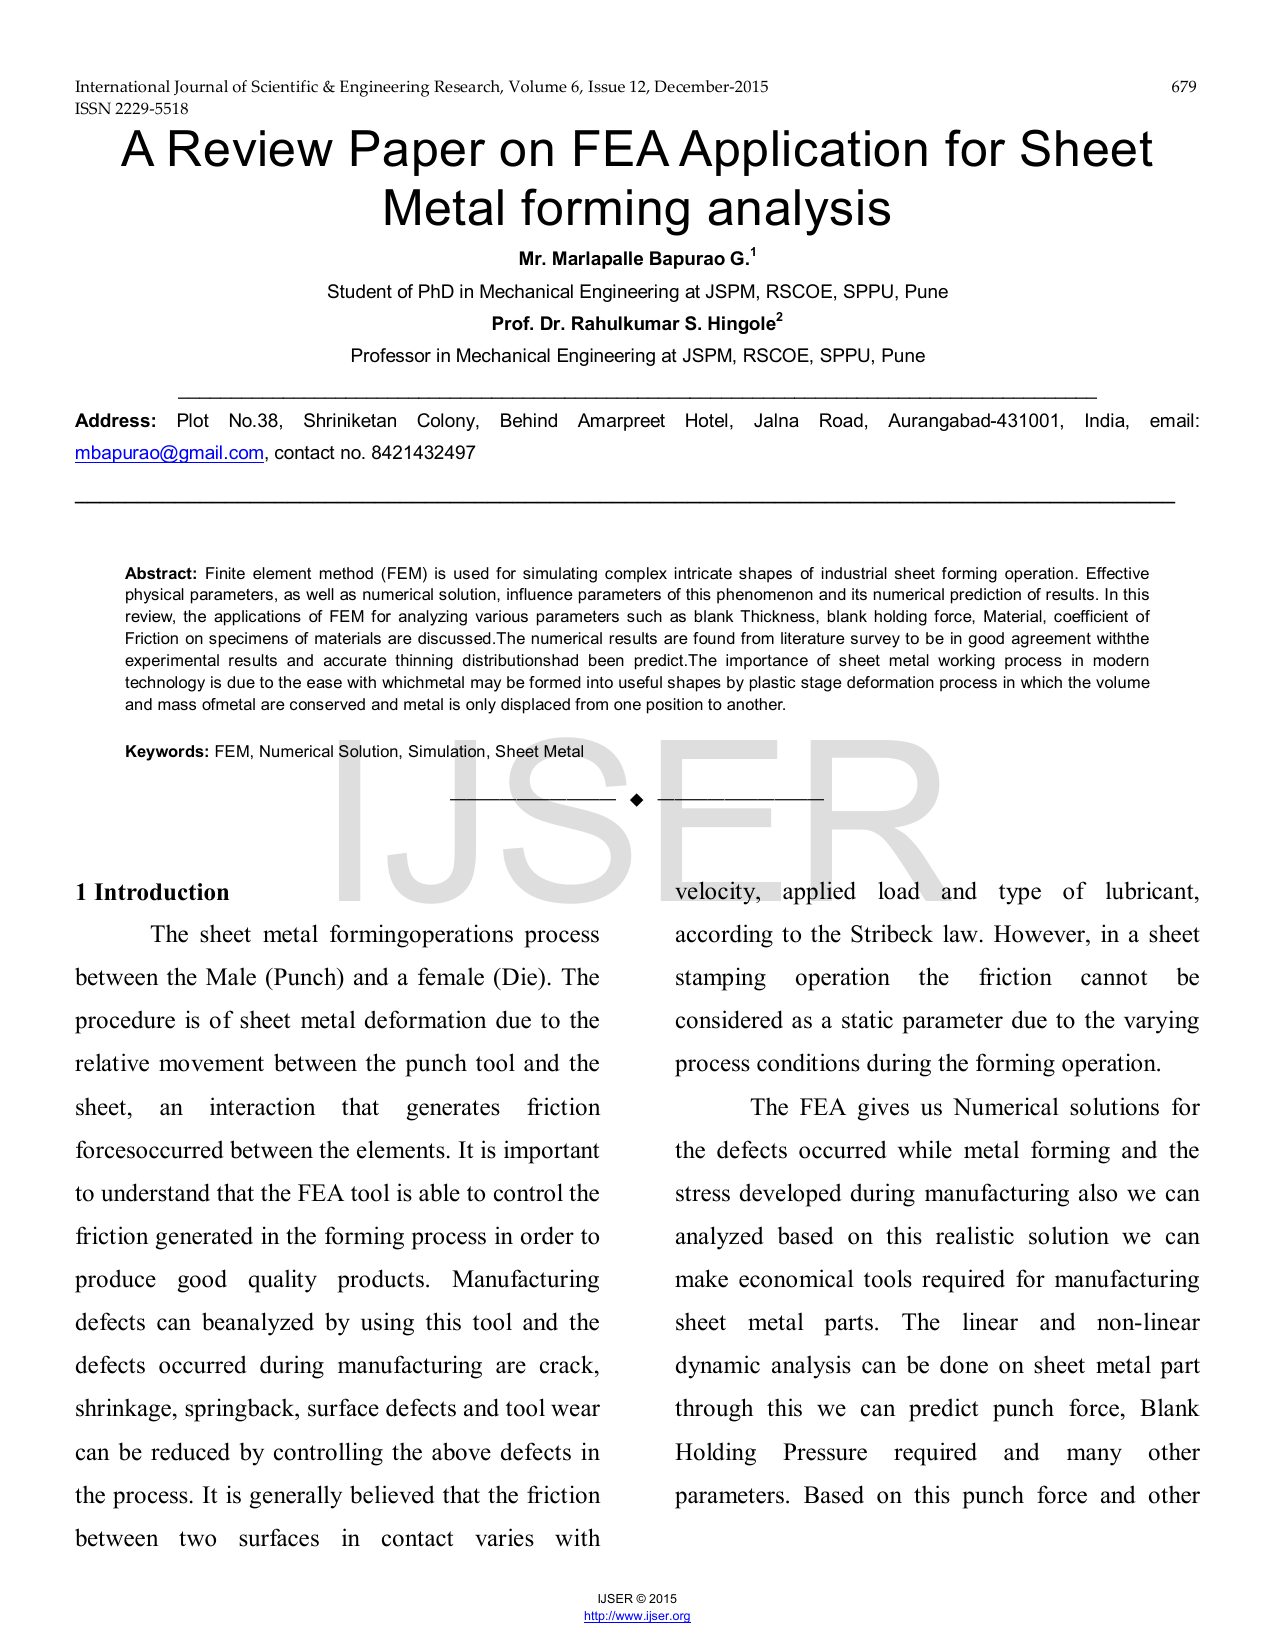 A Review Paper on FEA Application for Sheet Metal forming